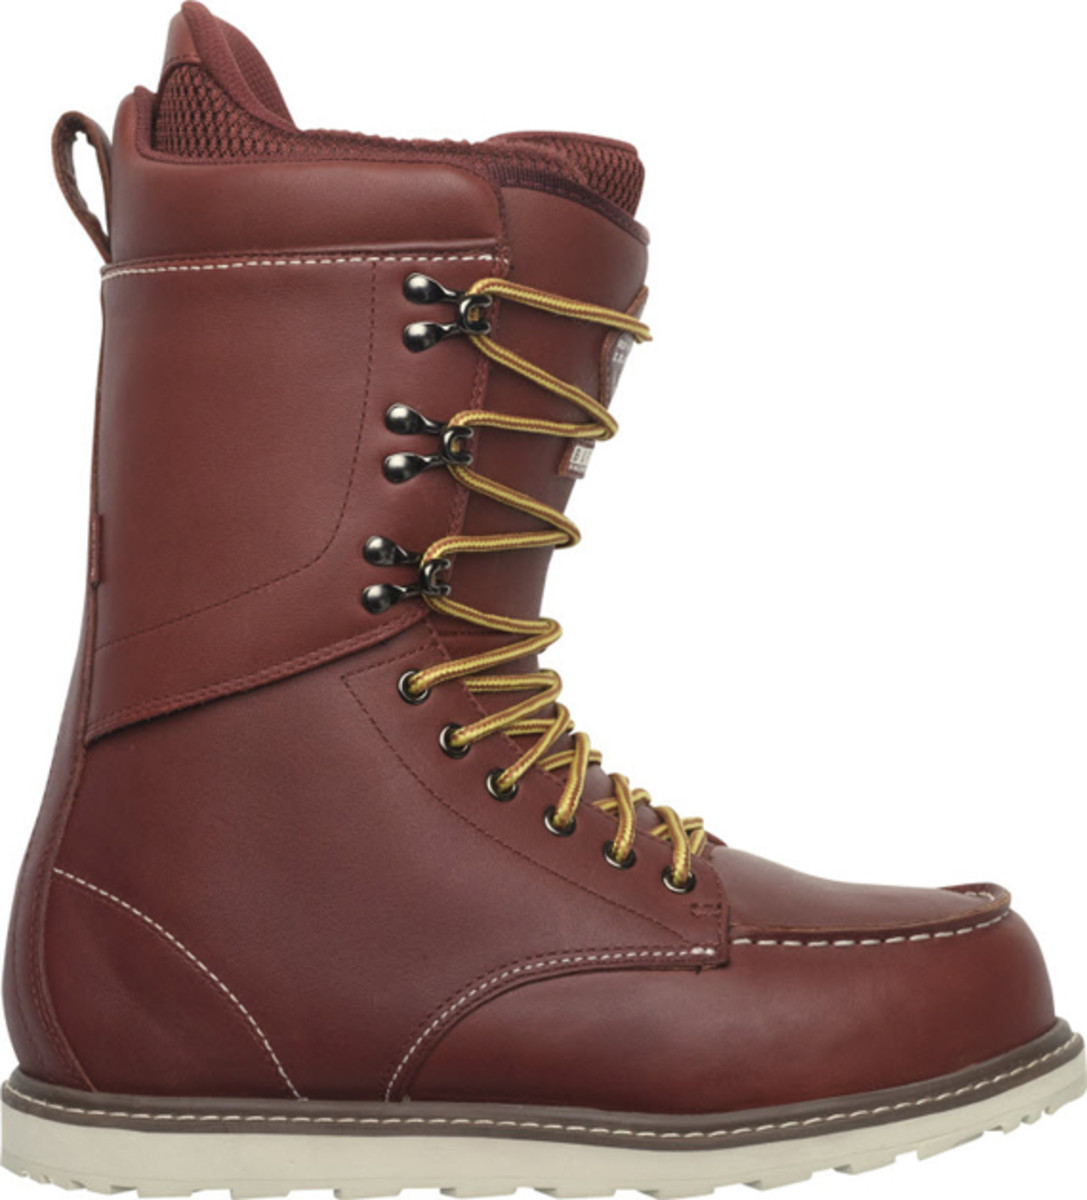 burton-red-wing-rover-limited-boots-01